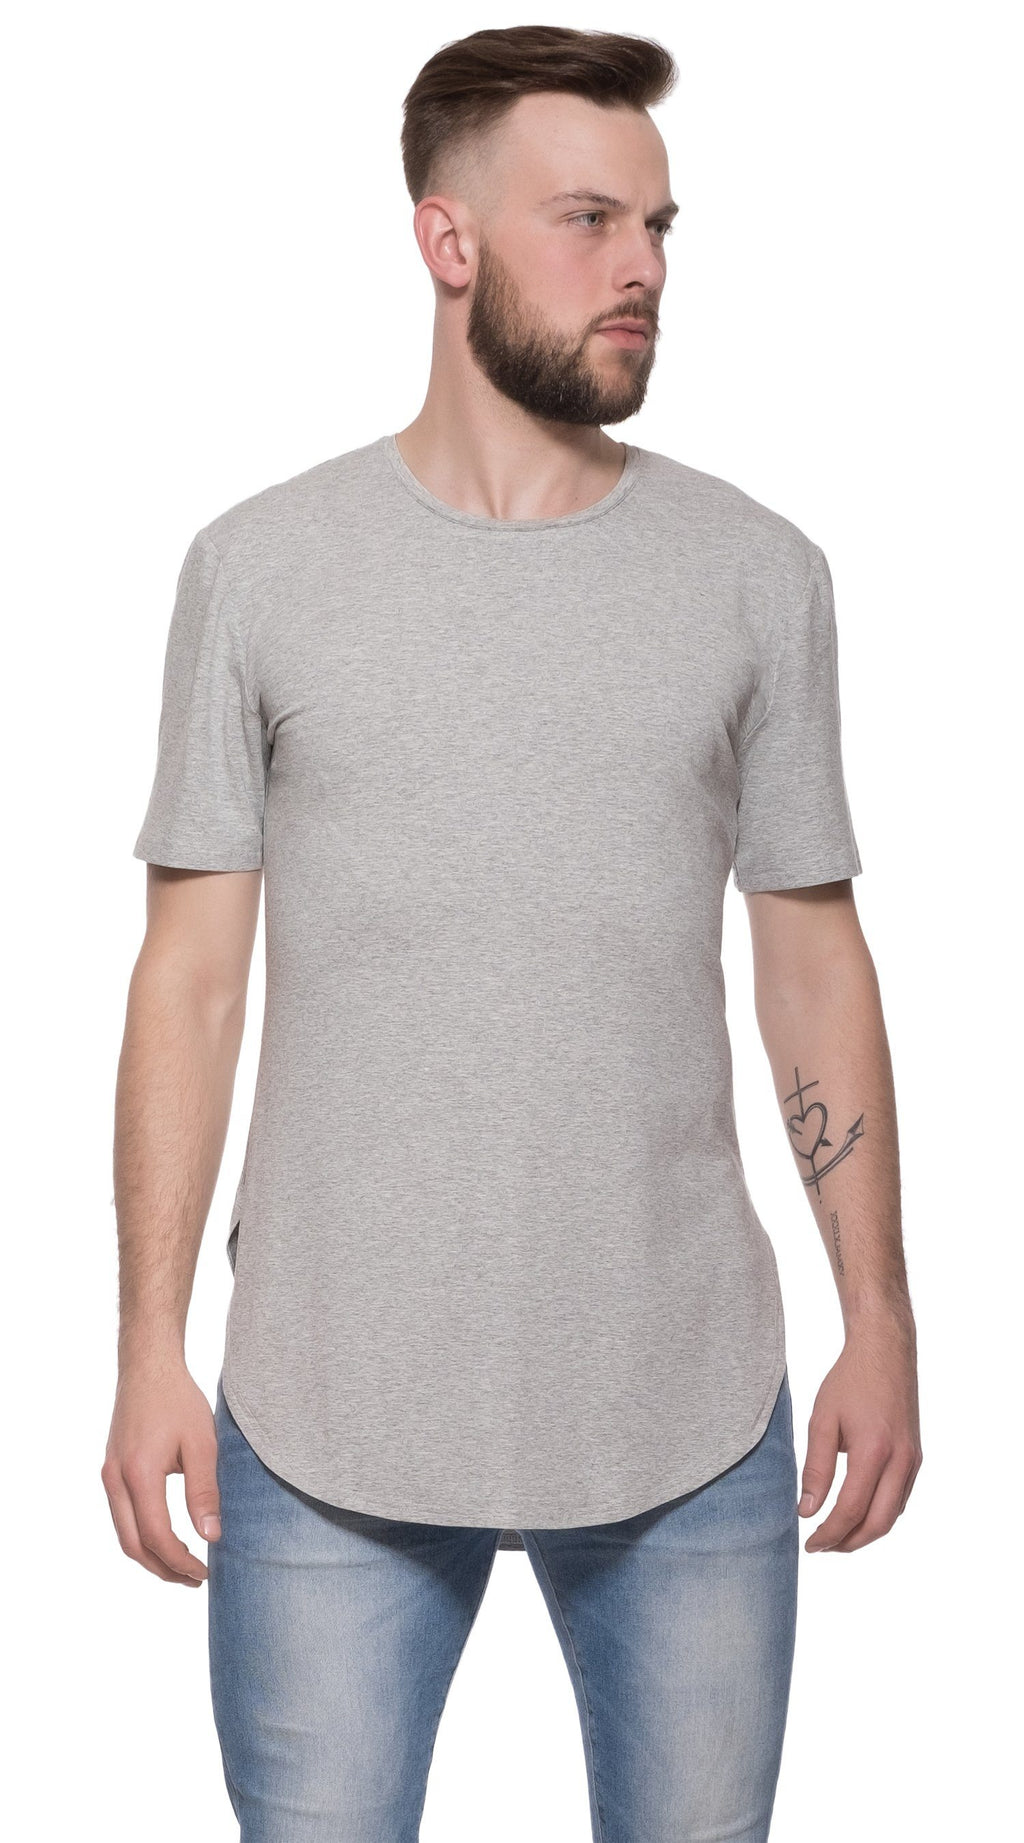 TheG Man Viscose Basic 2/2 Long Tee // grey